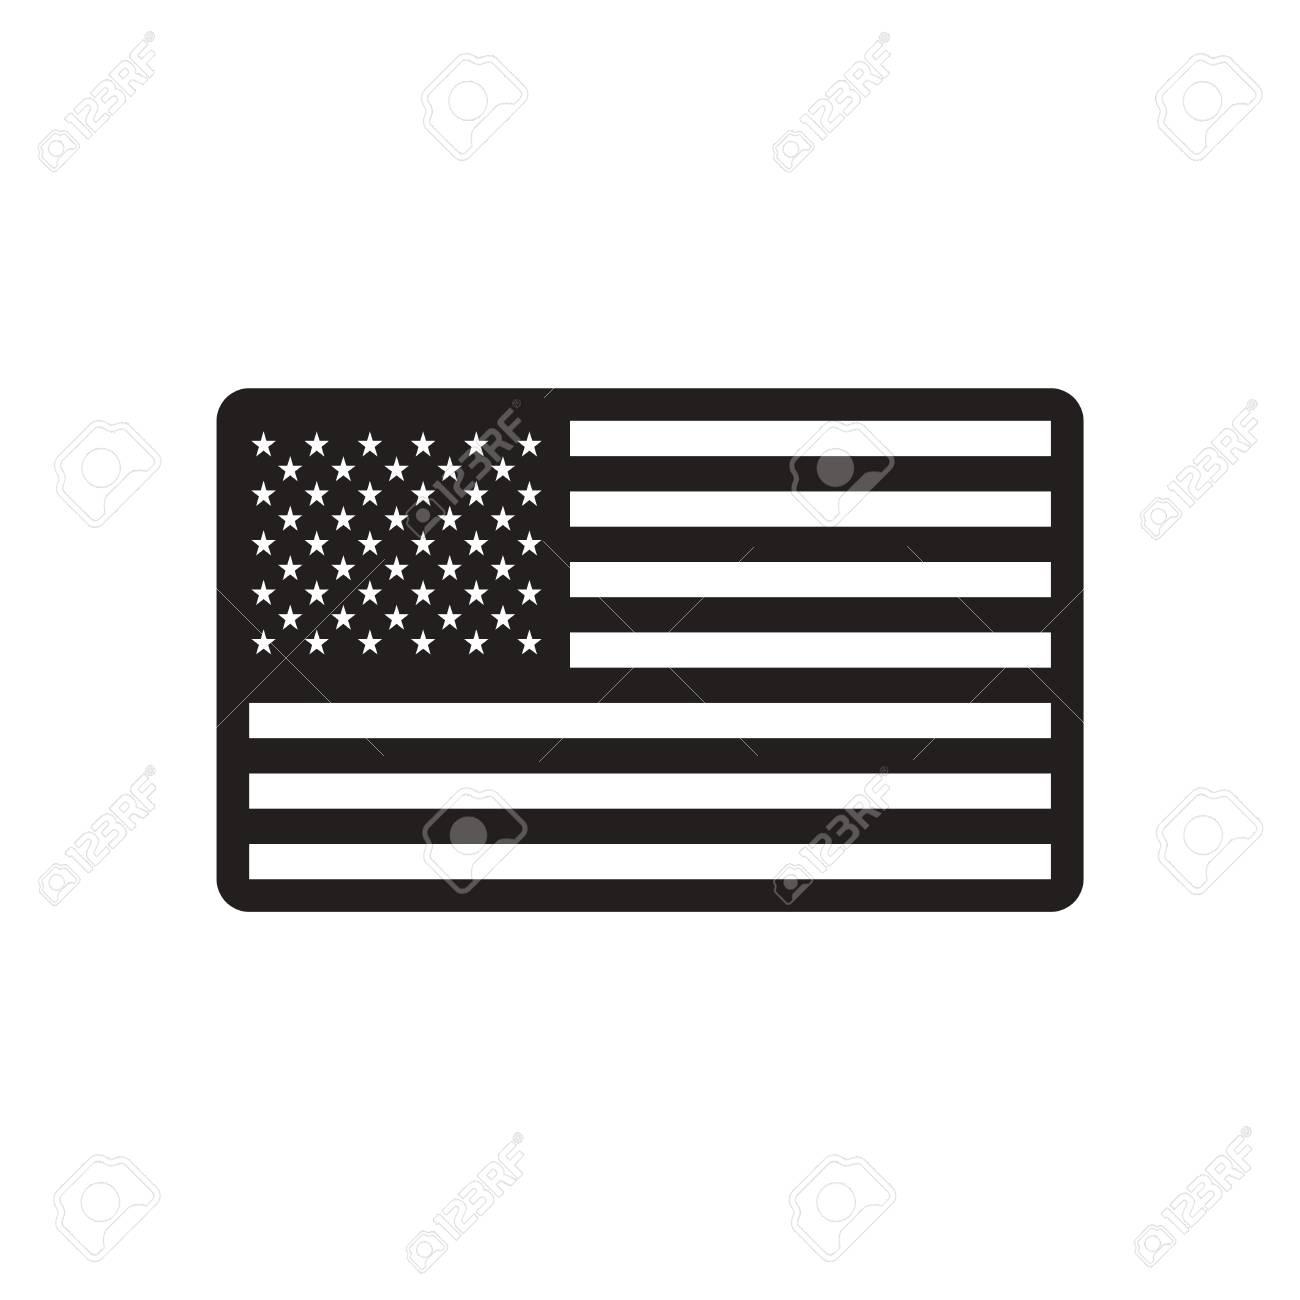 American Flag Black and White Images, Stock Photos & Vectors | Shutterstock